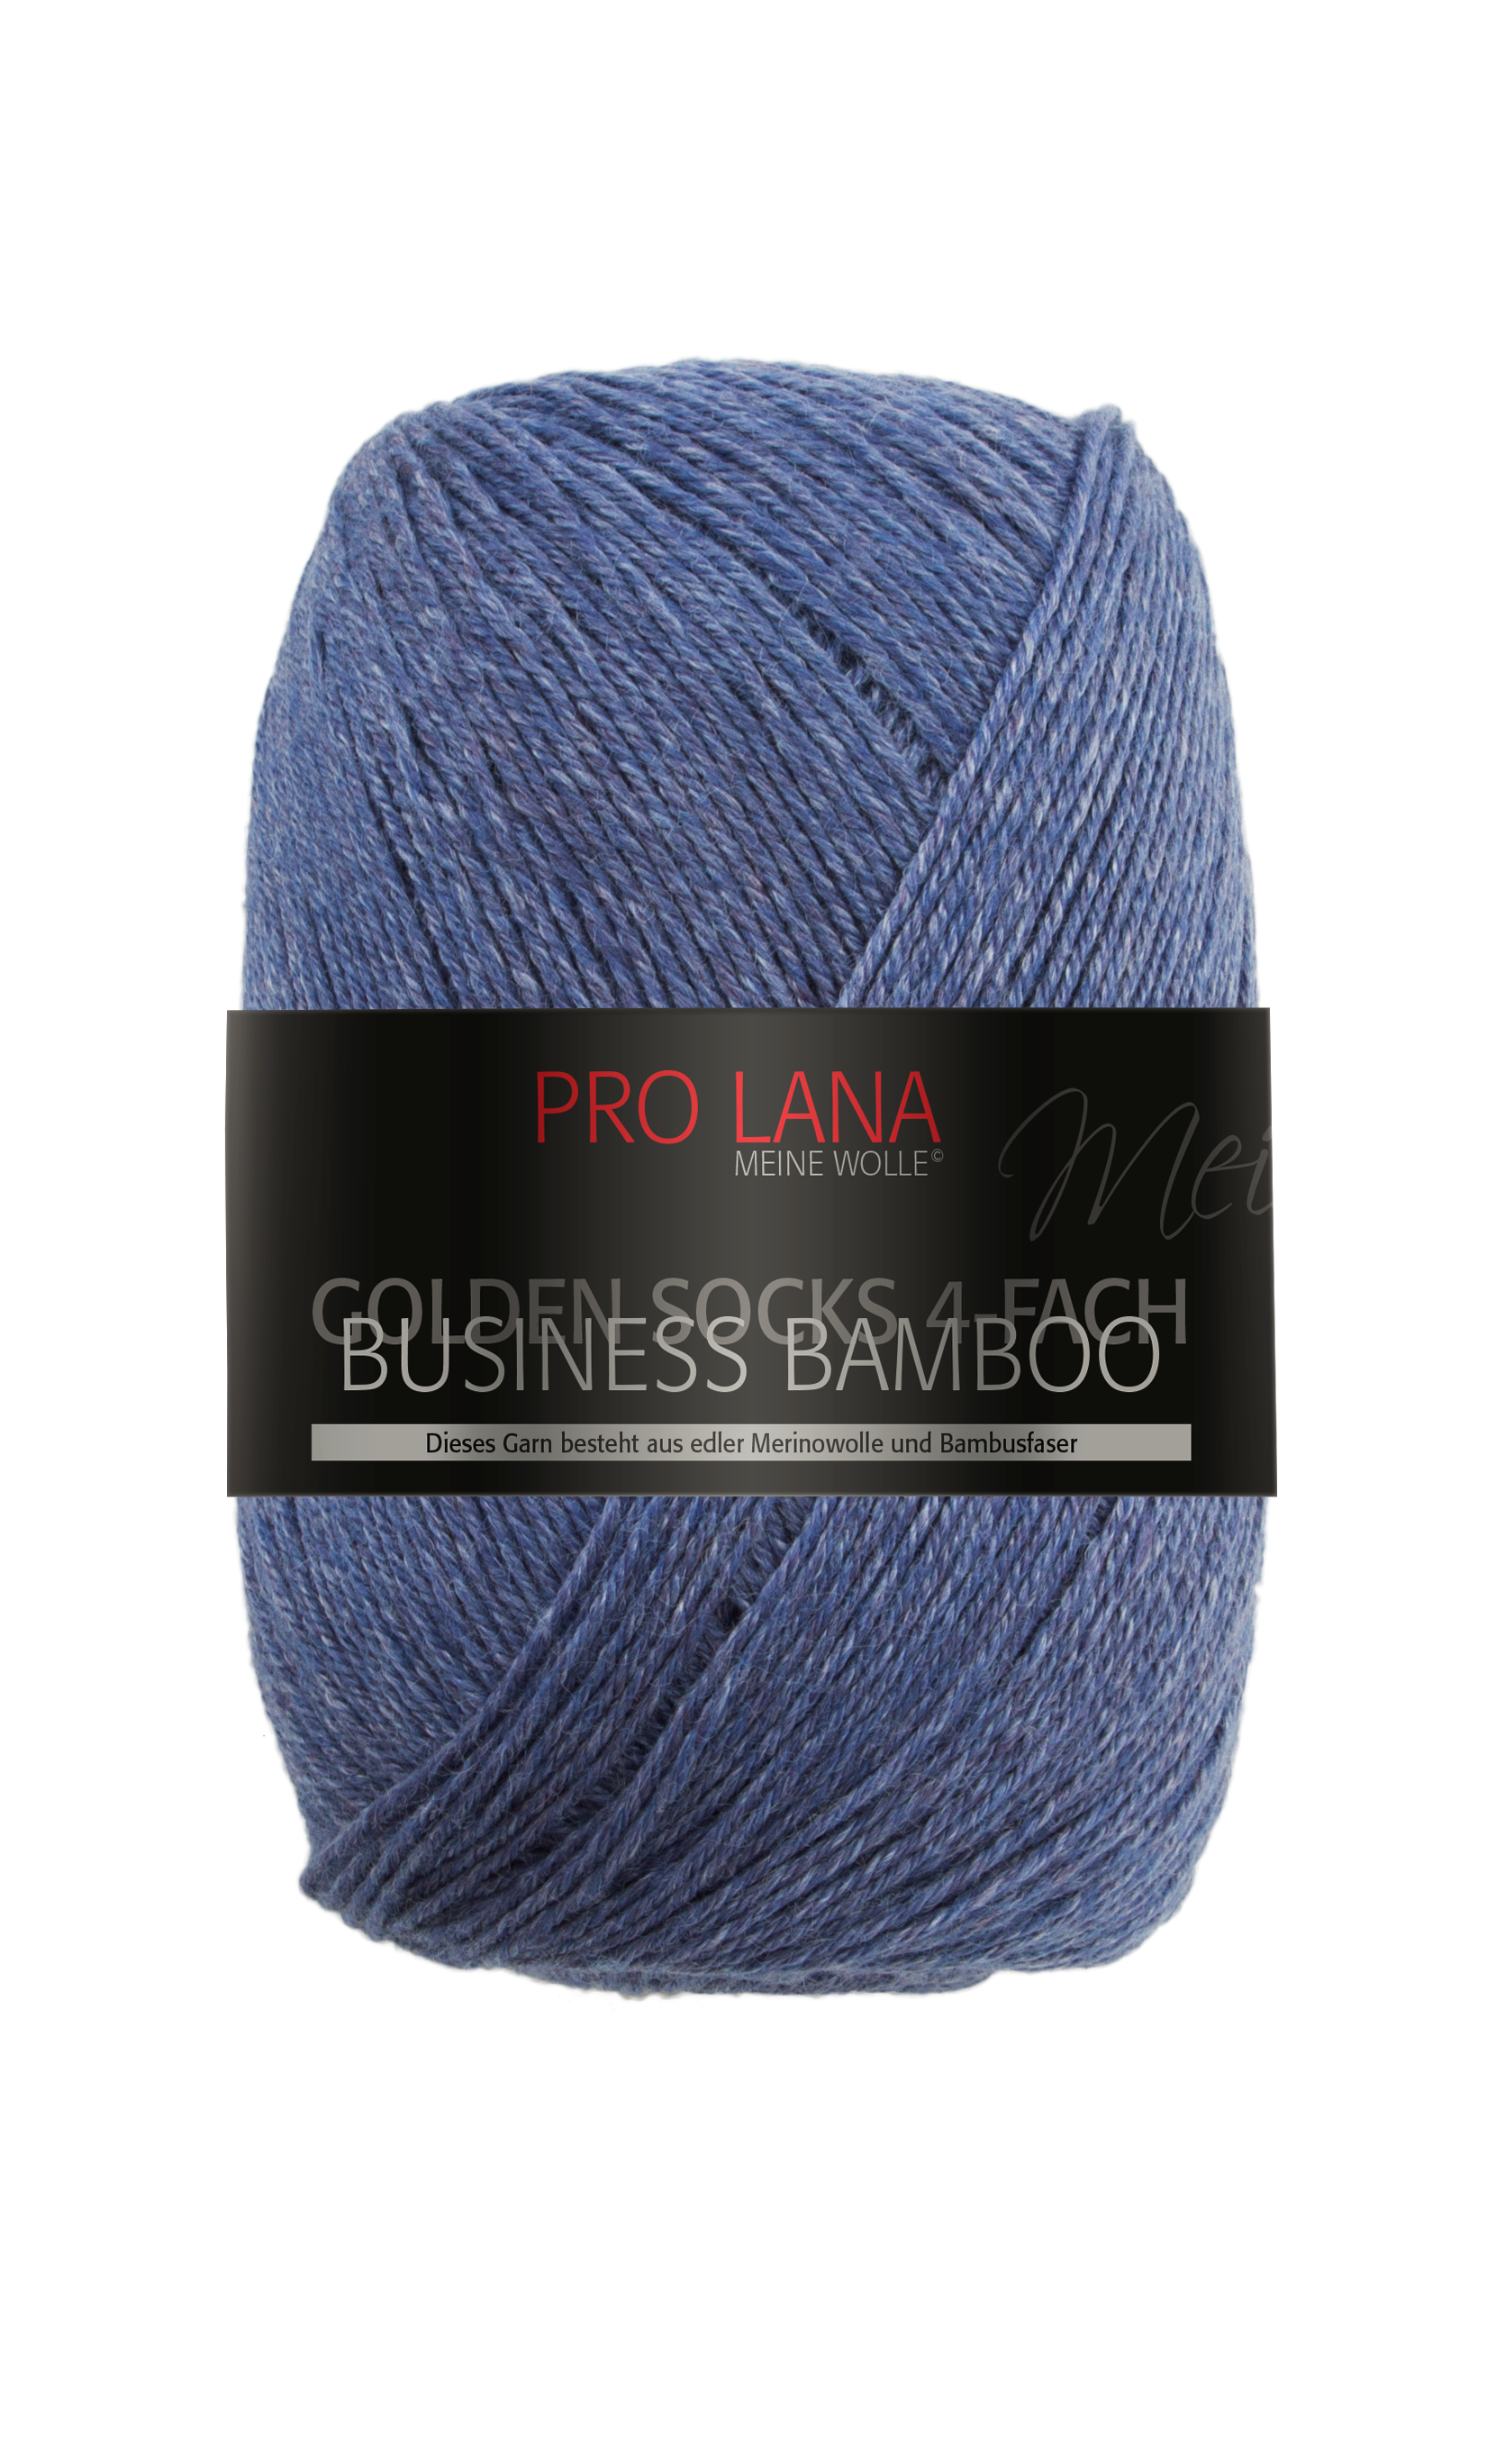 pro lana golden socks business bamboo